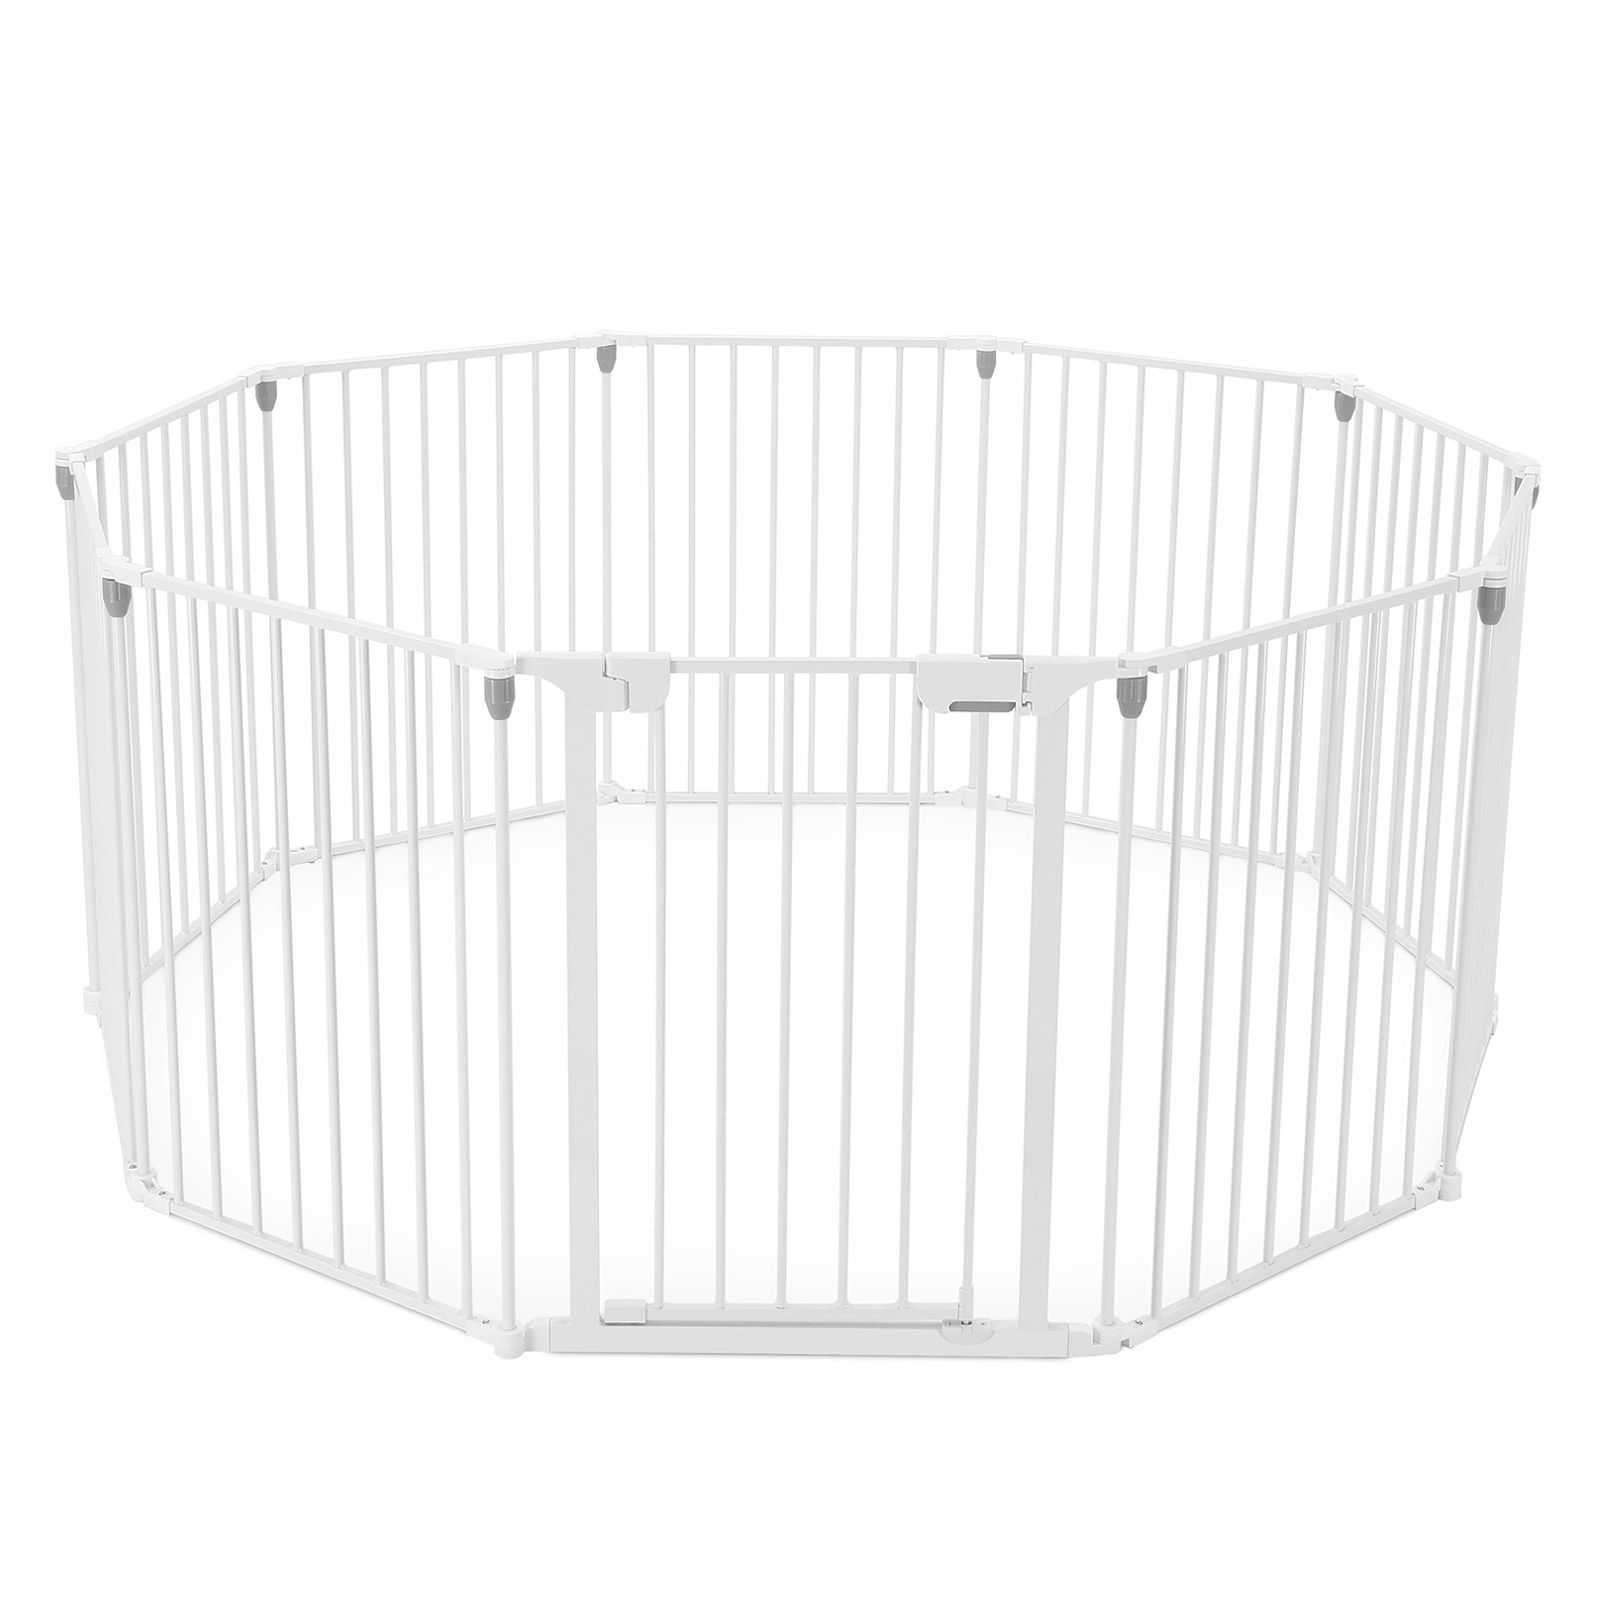 3 In 1 Baby Playpen 10 Panel Toddler Kids Safety Gates Interactive